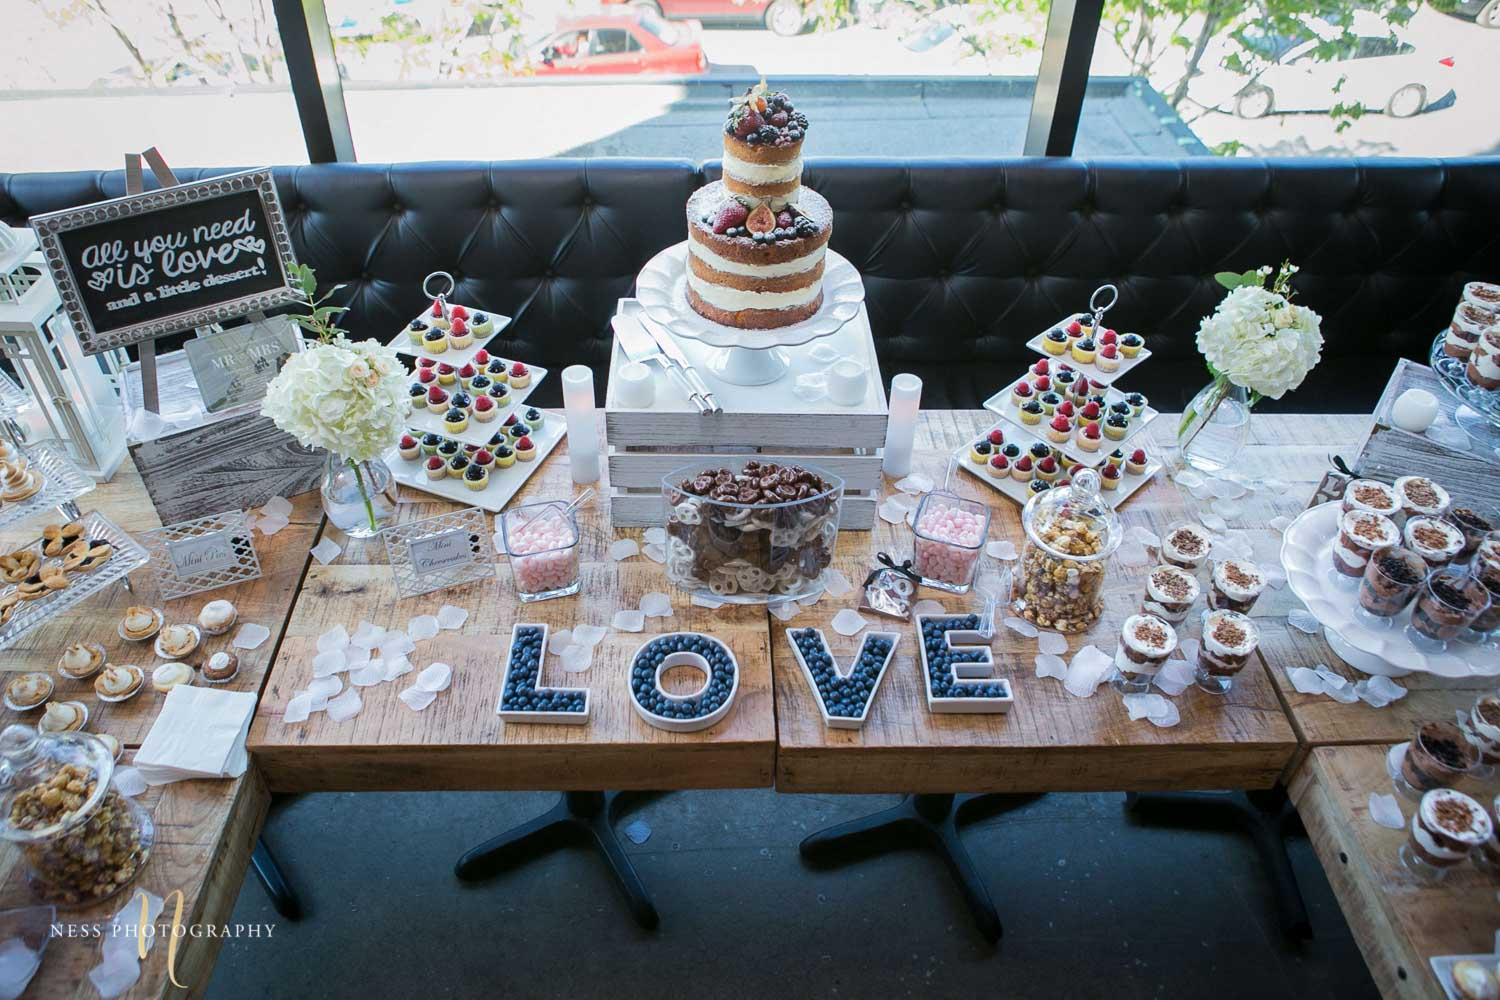 full view of the dessert table at engagement Party in Montreal